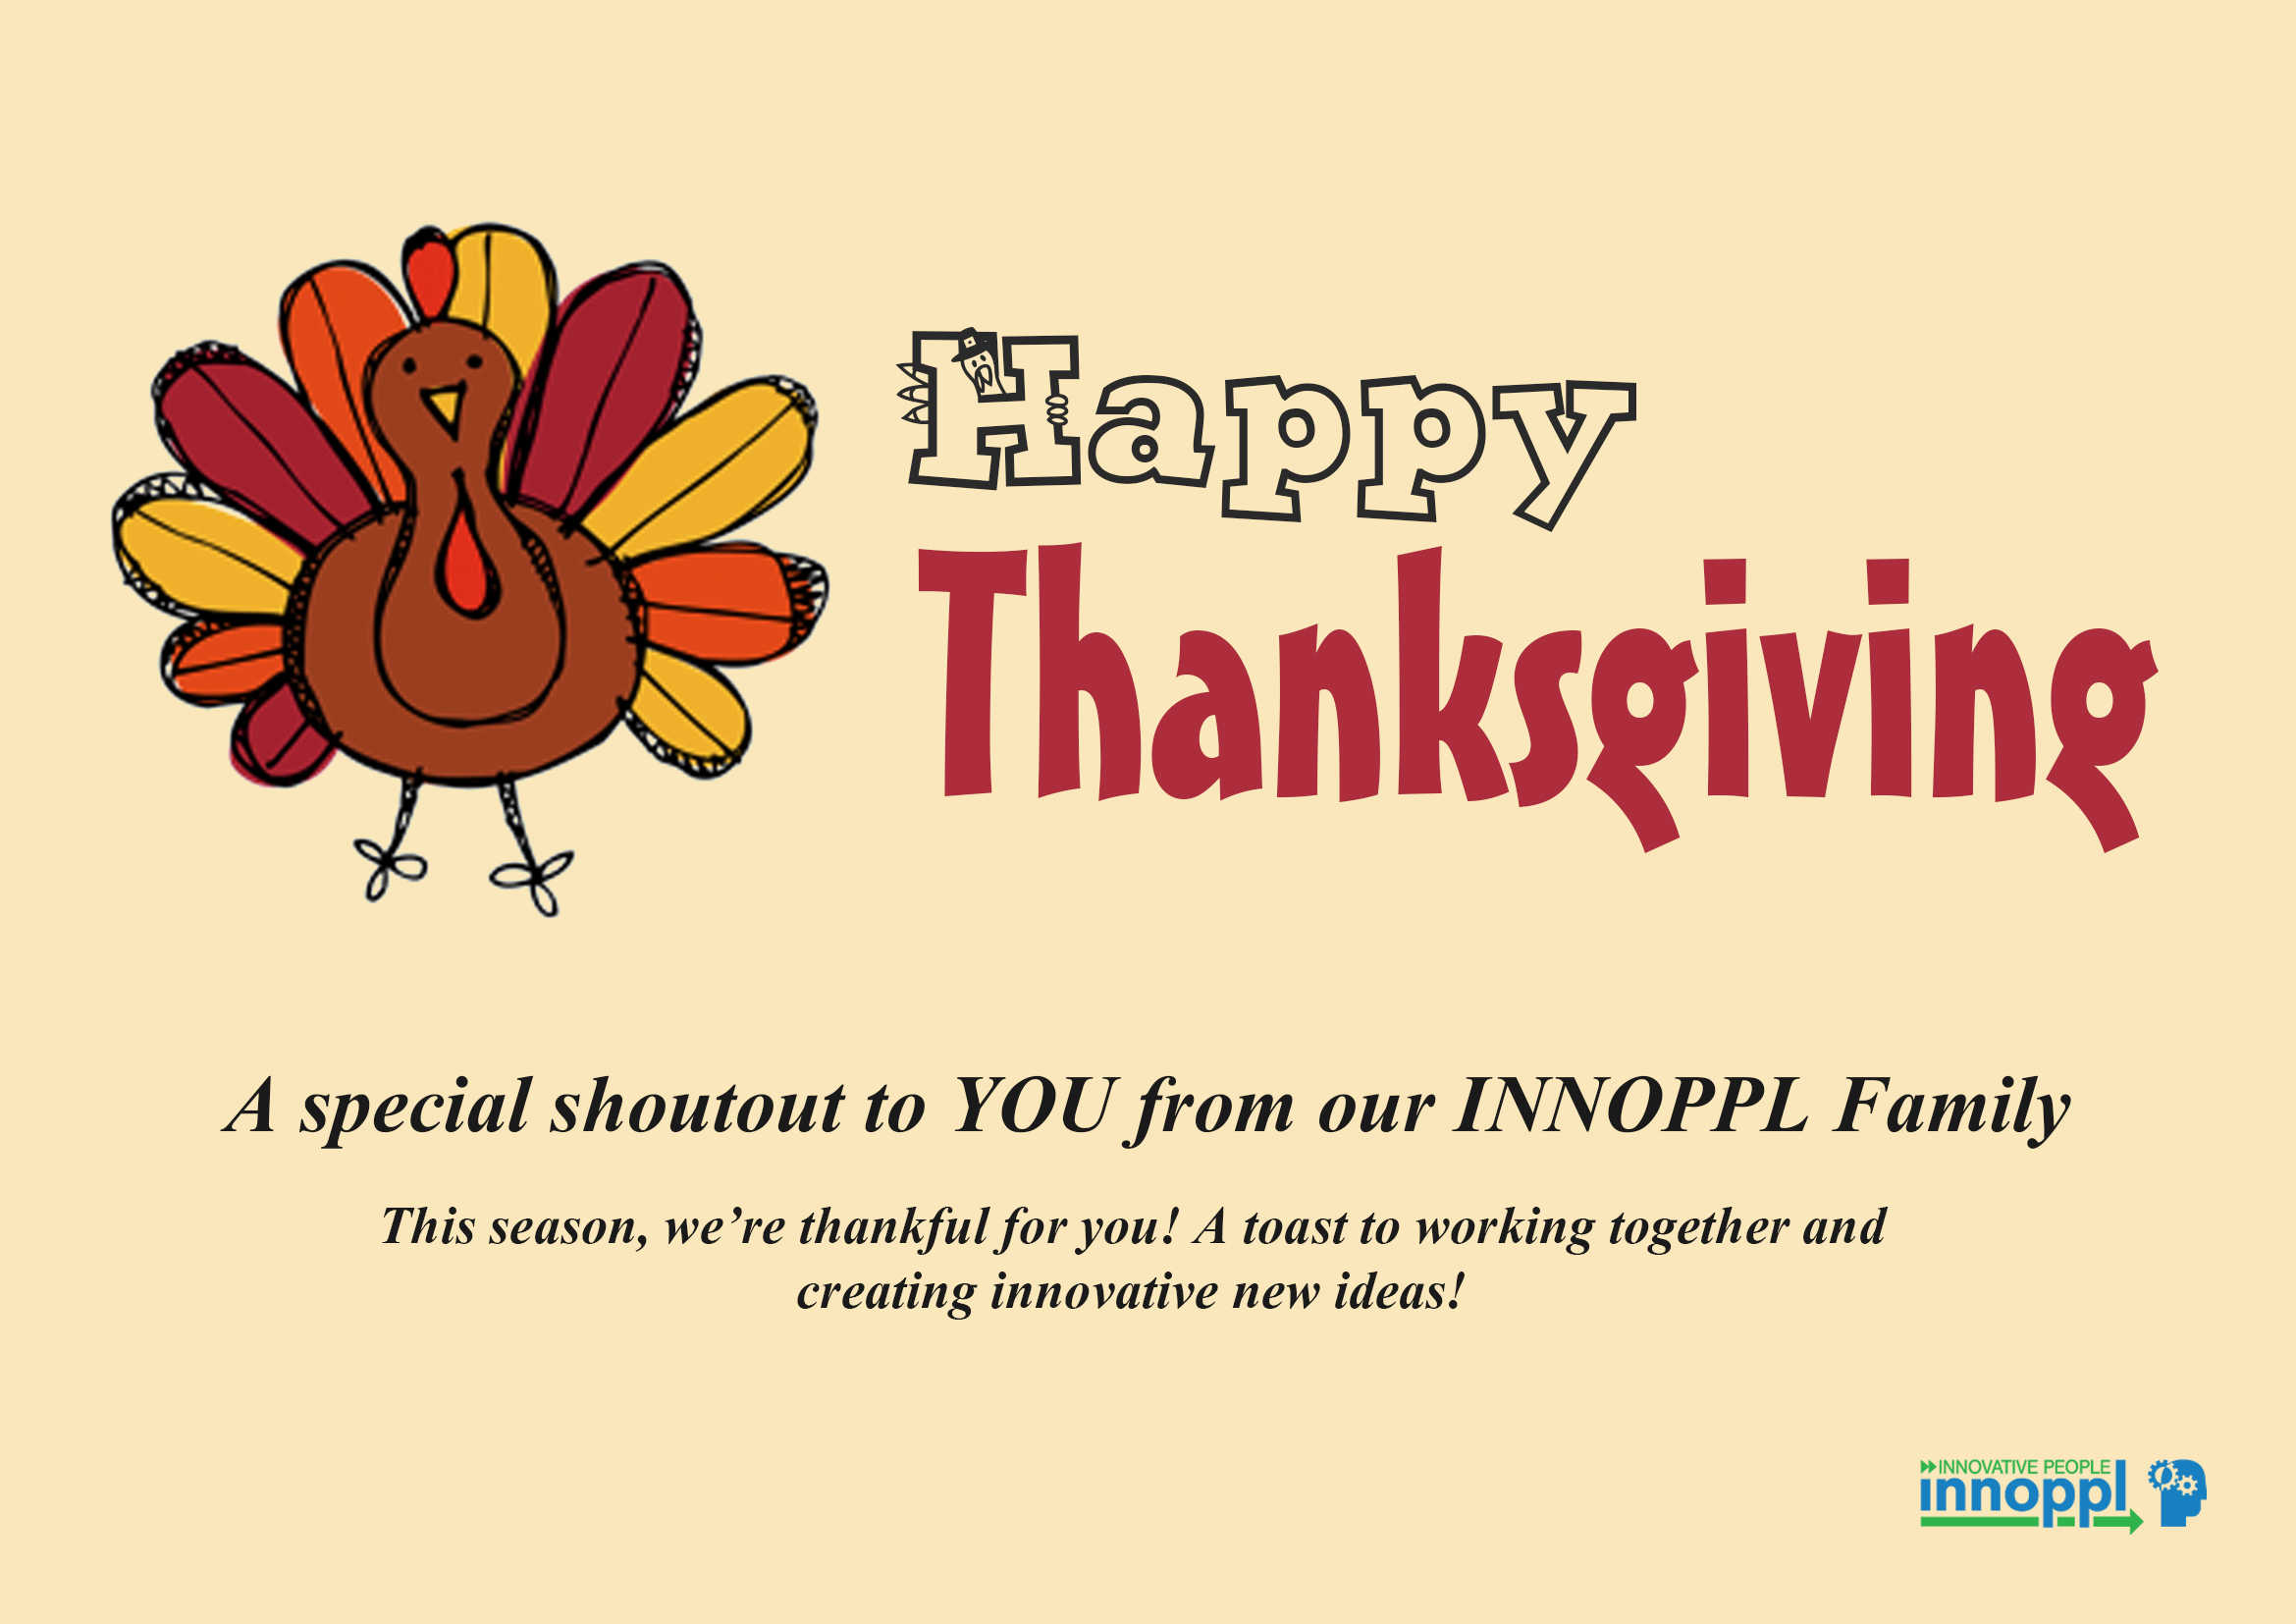 Innoppl Wishes You A Happy Thanksgiving